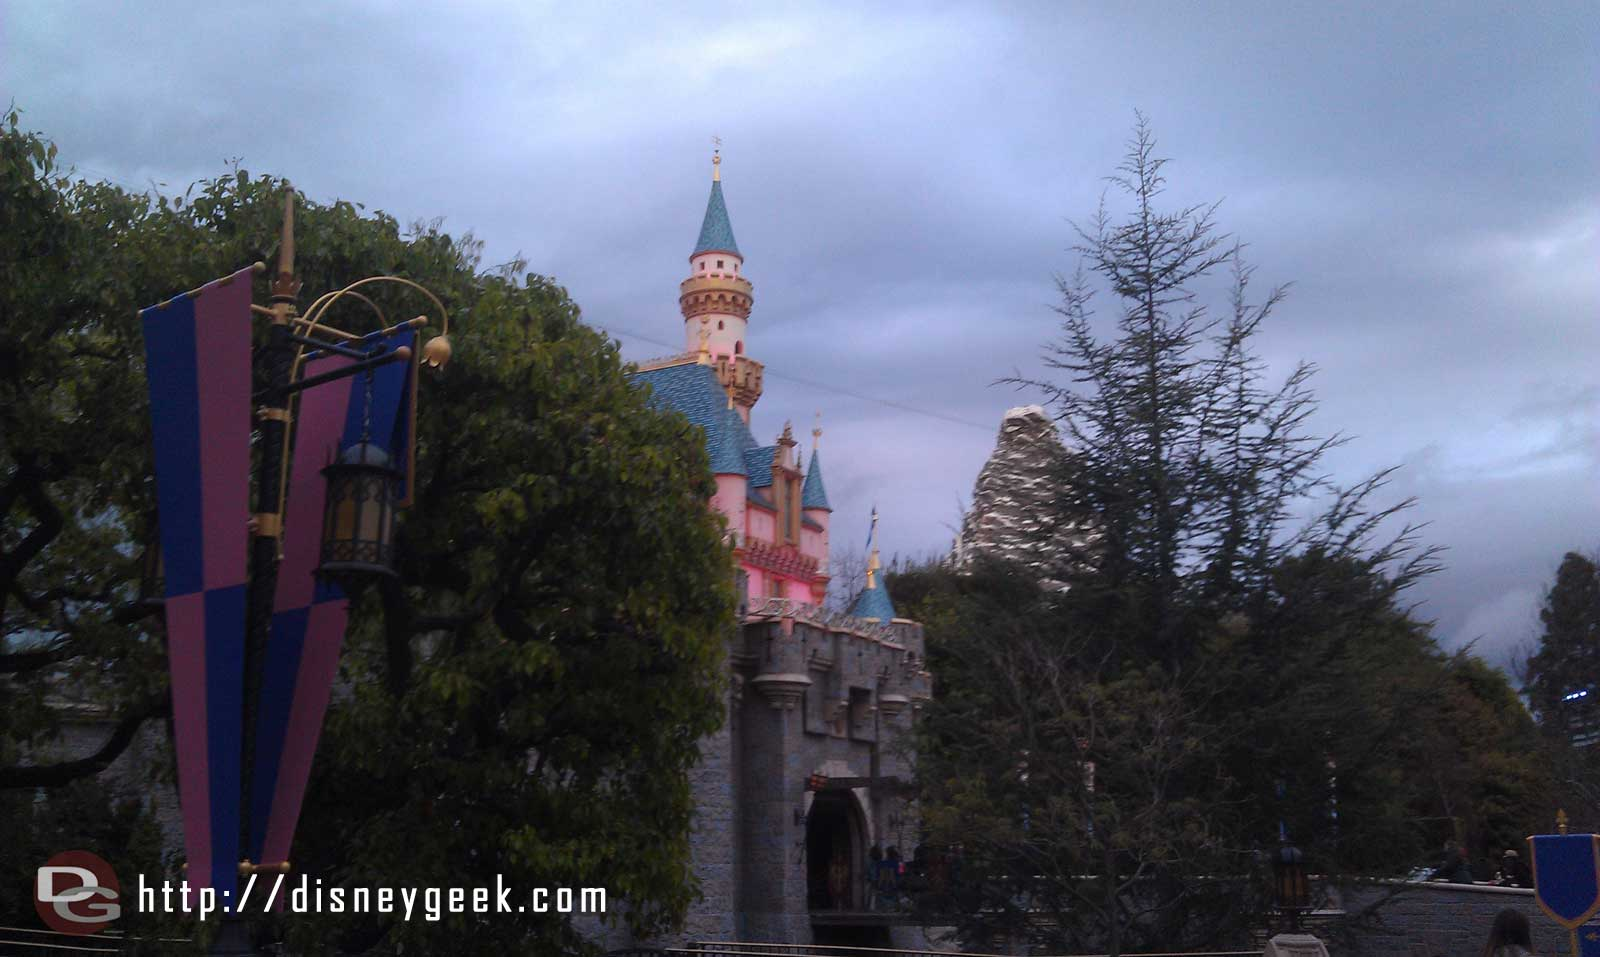 Sleeping Beauty Castle & Matterhorn from Fantasty Faire